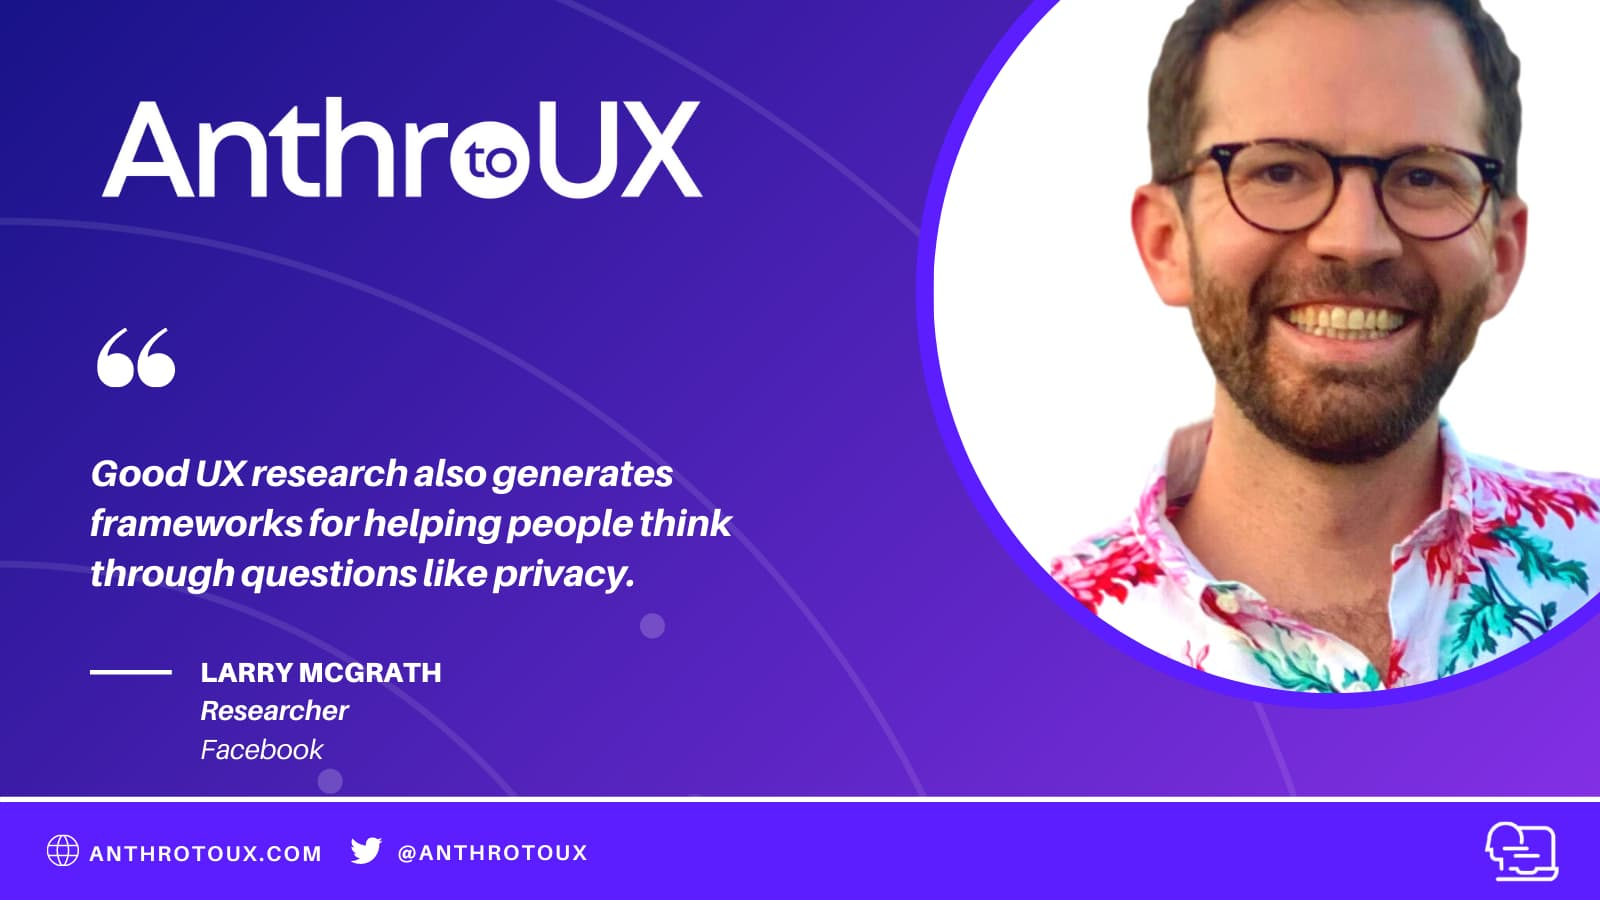 Larry McGrath on the Anthro to UX Podcast with Matt Artz